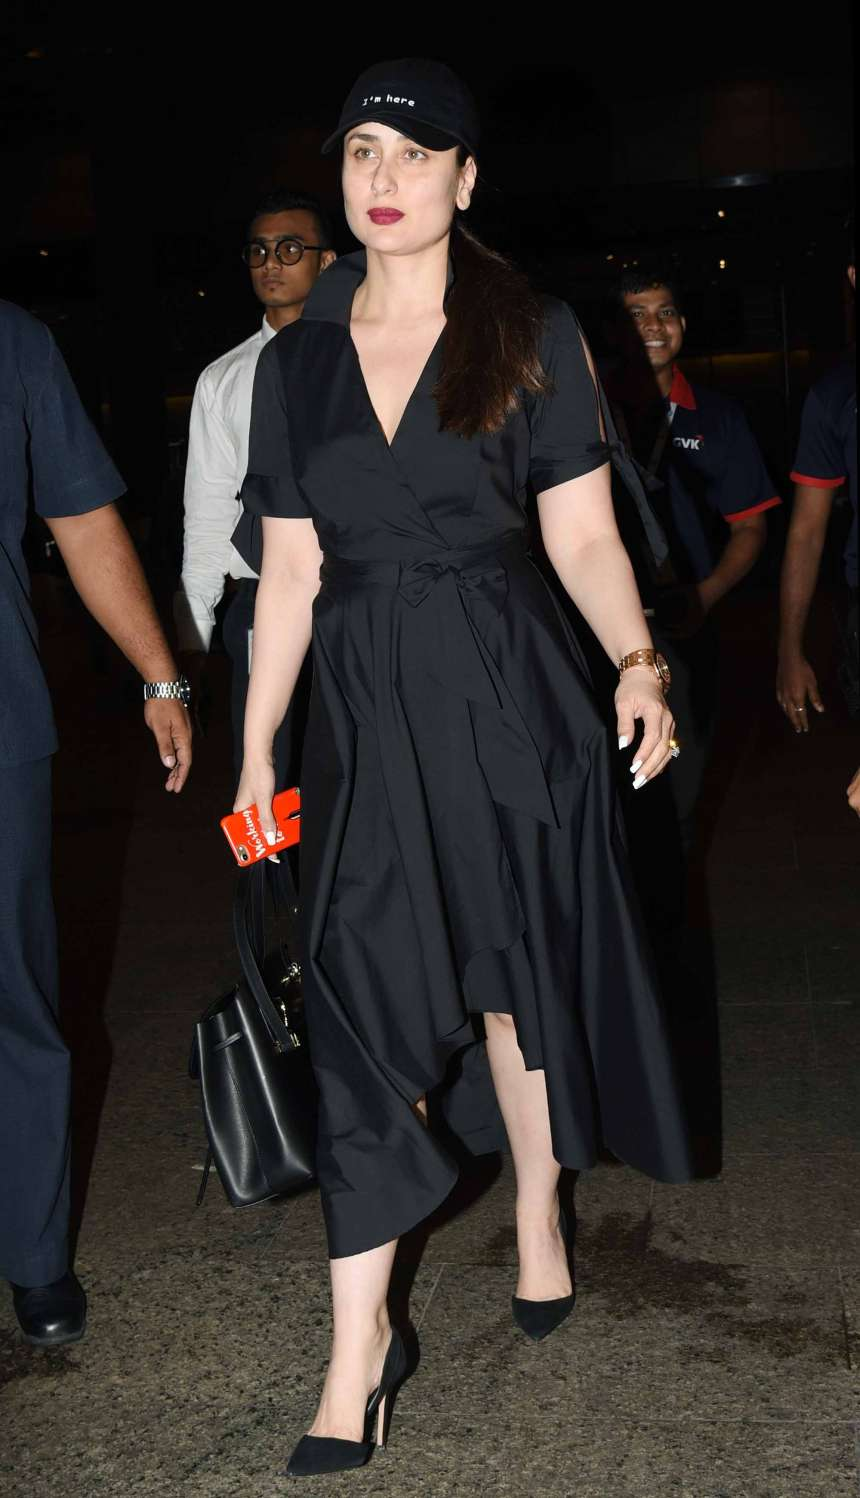 Kareena Kapoor Khan is slaying in a black long dress with a black cap and a berry shade lipstick. She has paired her dress with a pair of black stilettos.